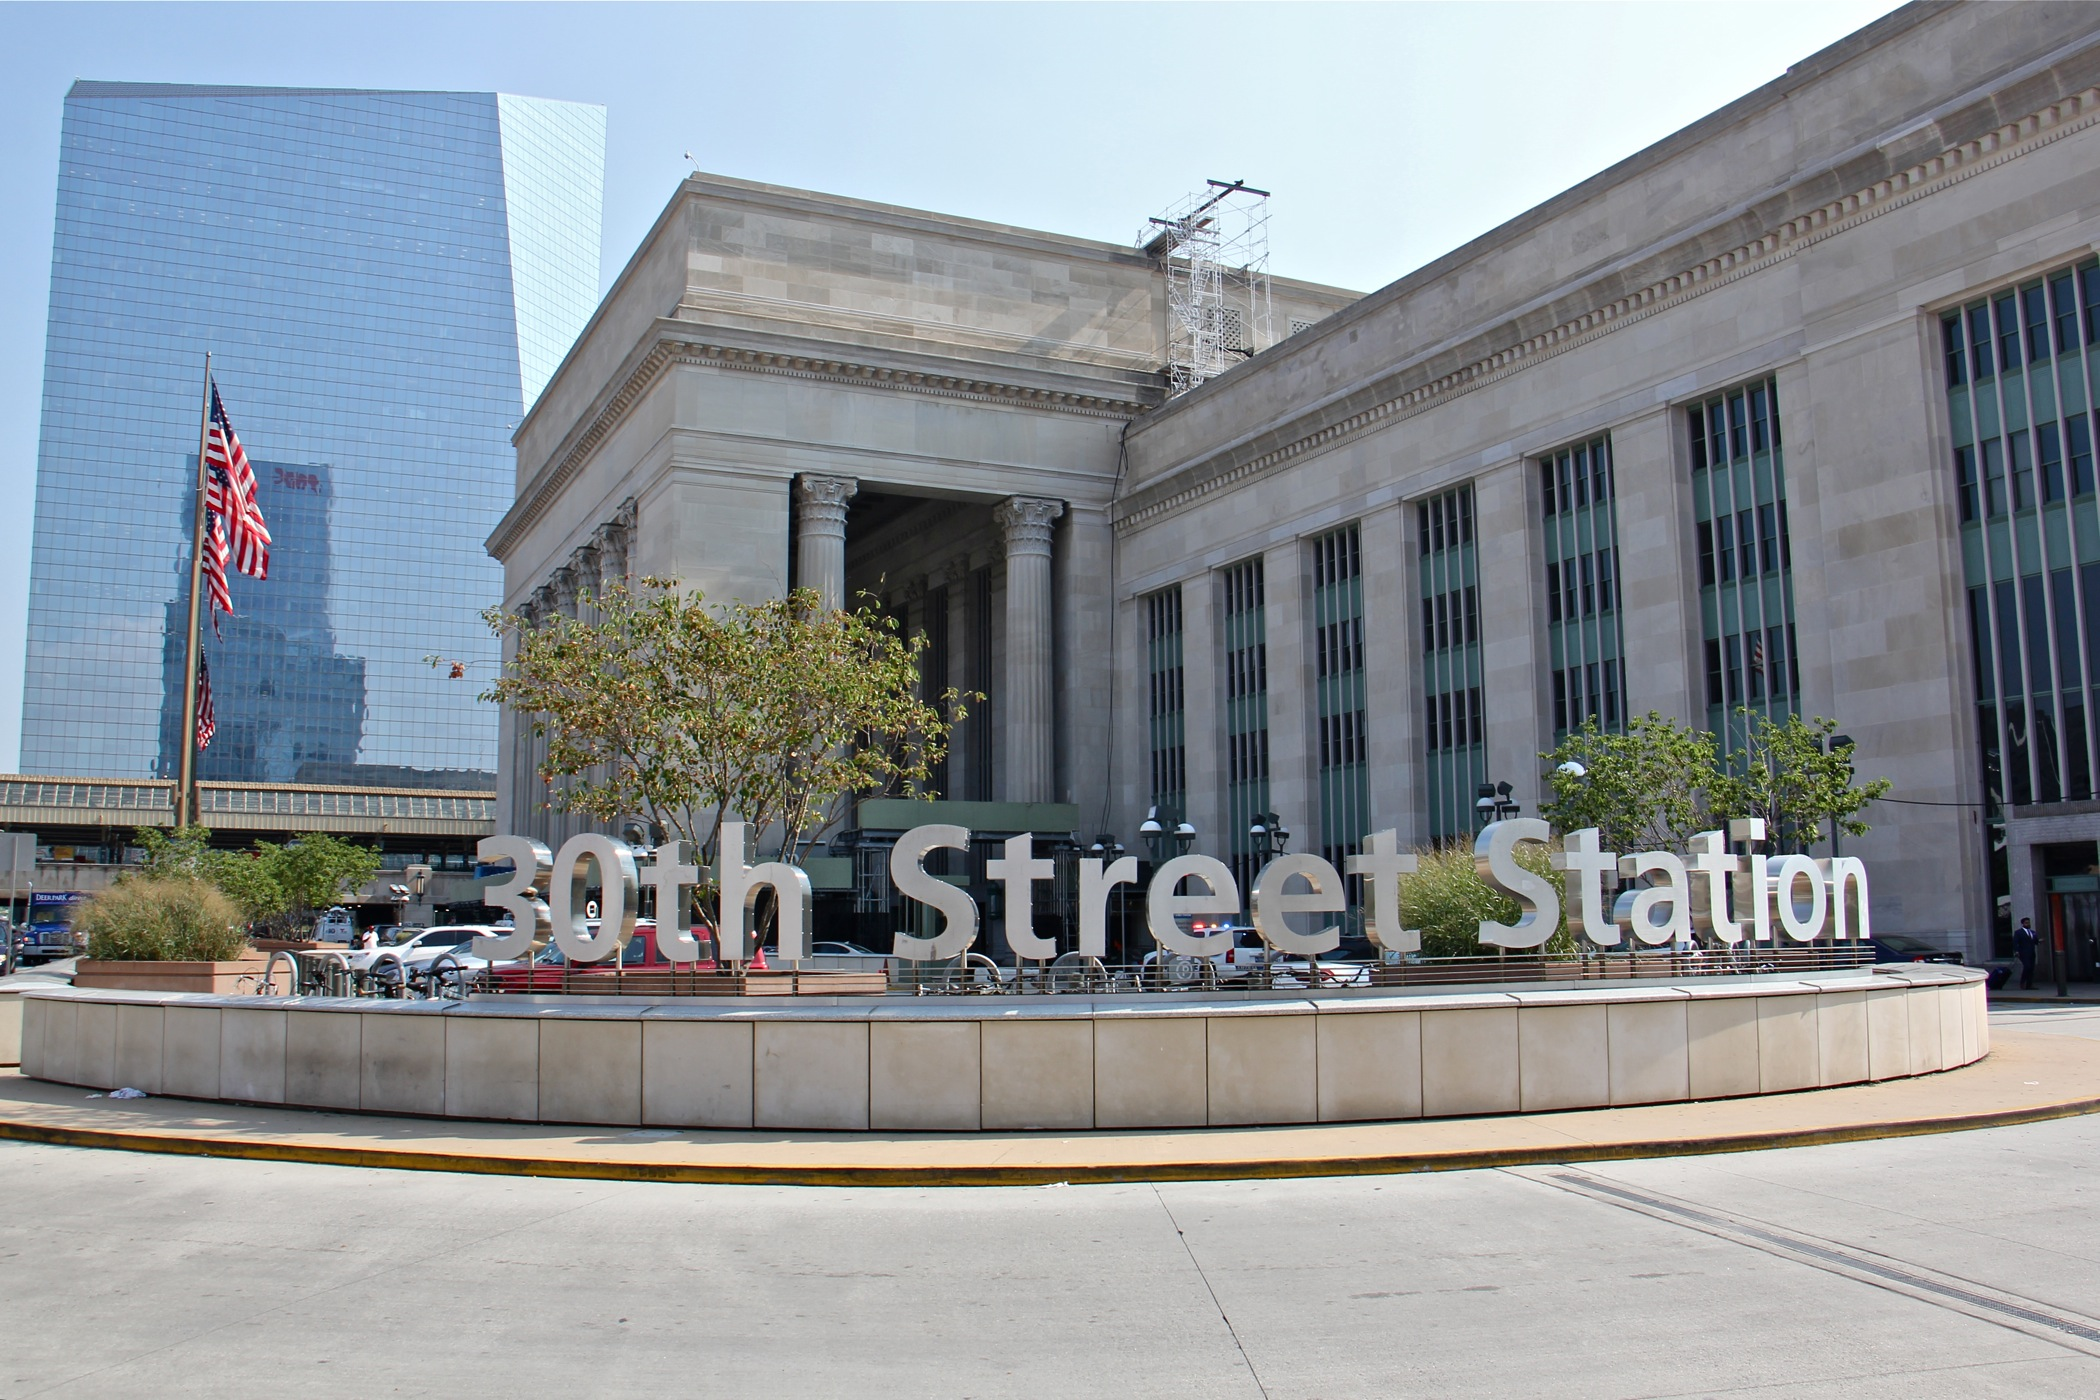 Exterior of 30th Street Station